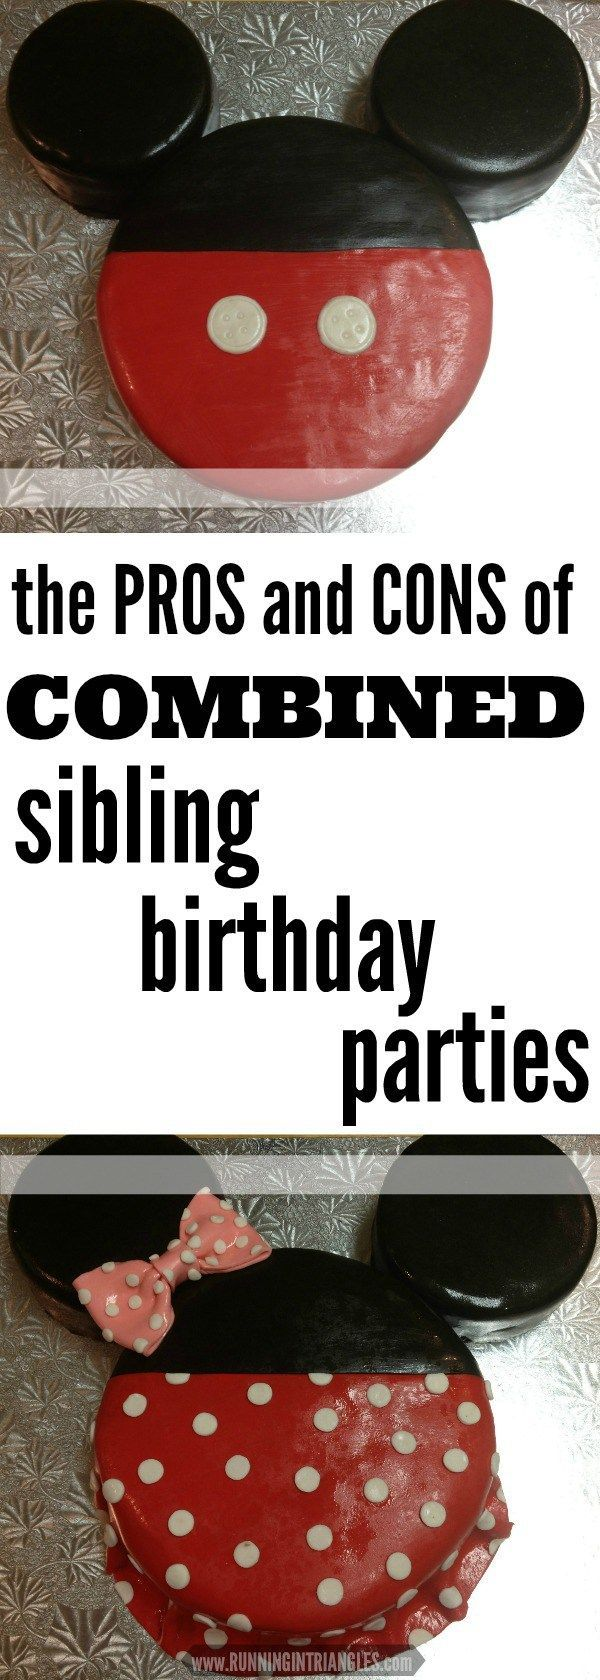 Having children with birthdays close together can either be a PRO or a CON, depending on how you look at it. Is a sibling birthday party right for you?